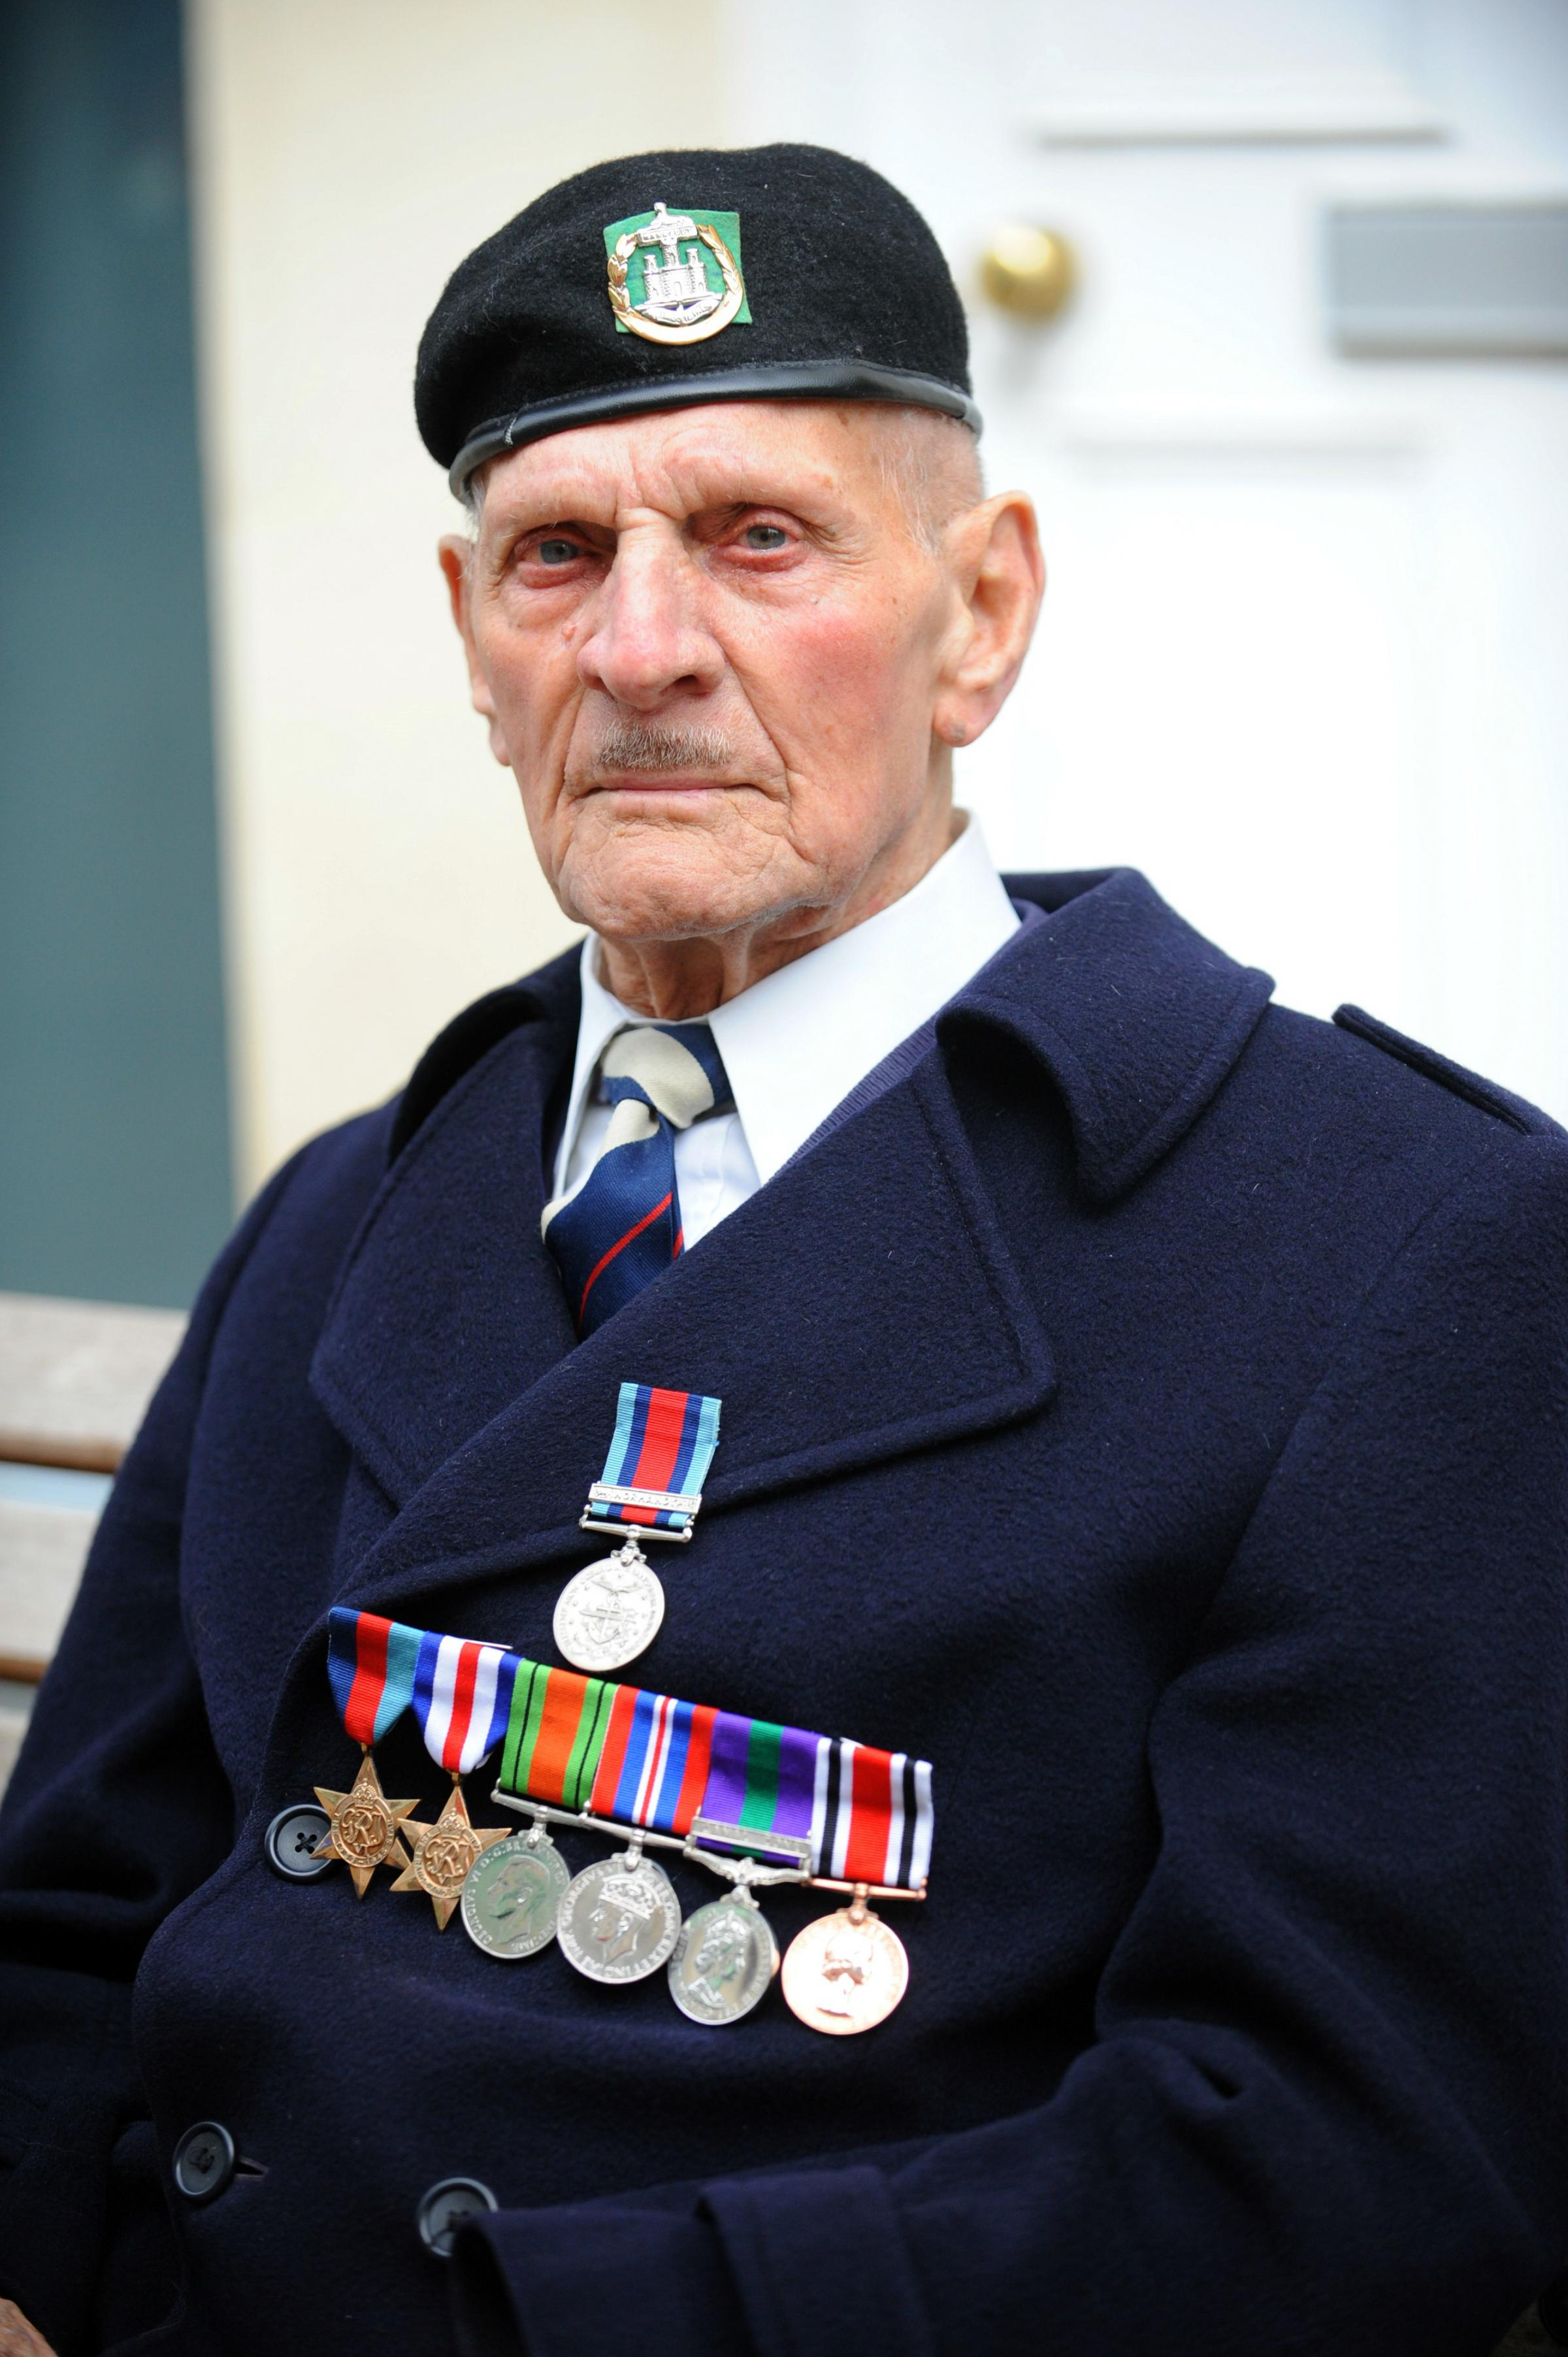 Ivor Adams, 89, one of the many war veterans who landed in Normandy on D-Day